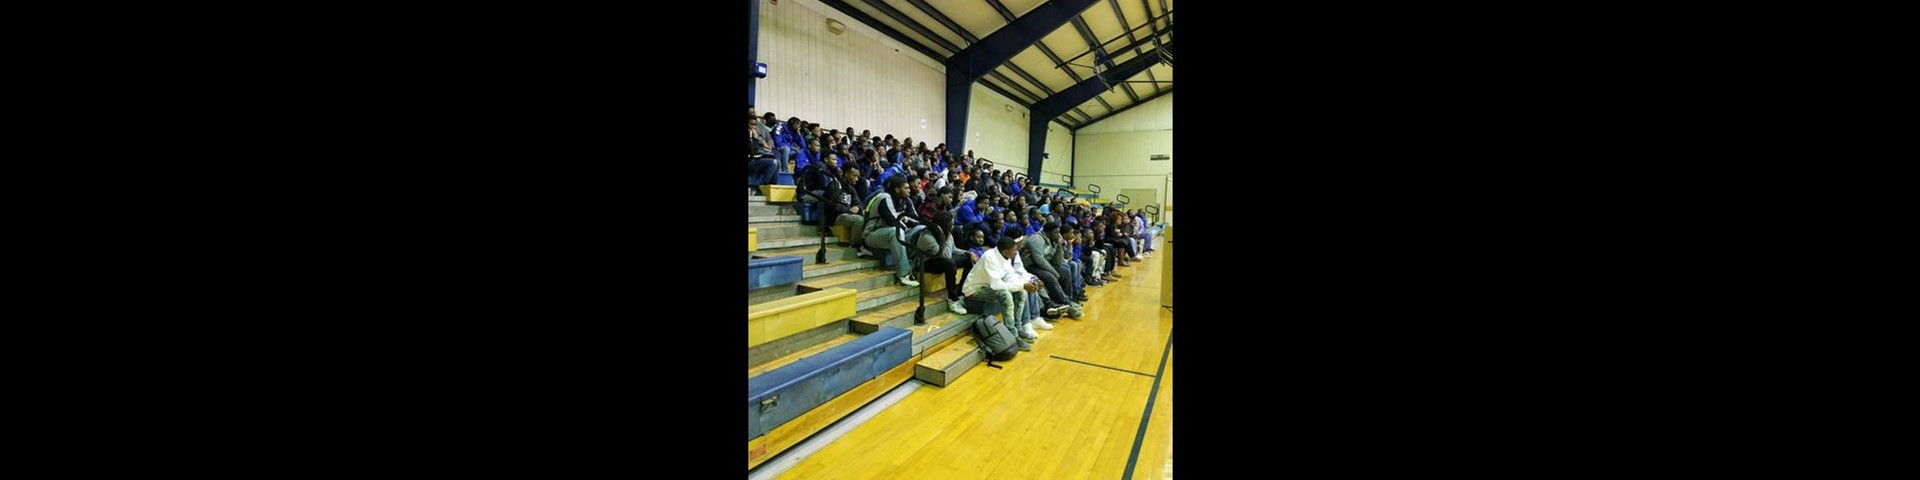 Keith Middle-High, November All-male Assembly